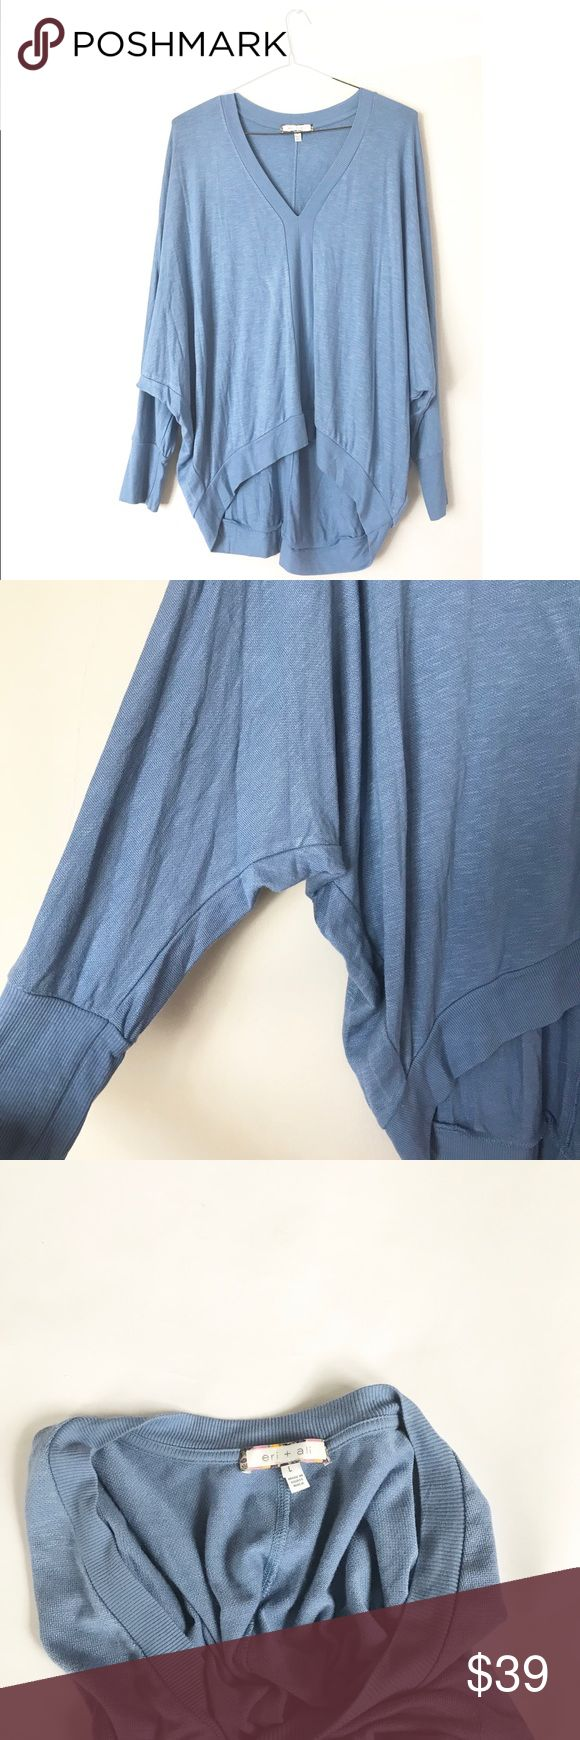 Anthropologie Eri + Ali Blue Top Sz L Very soft and comfortable fabric. Lovely batwing style long sleeves top. It's in like new condition. Anthropologie Tops